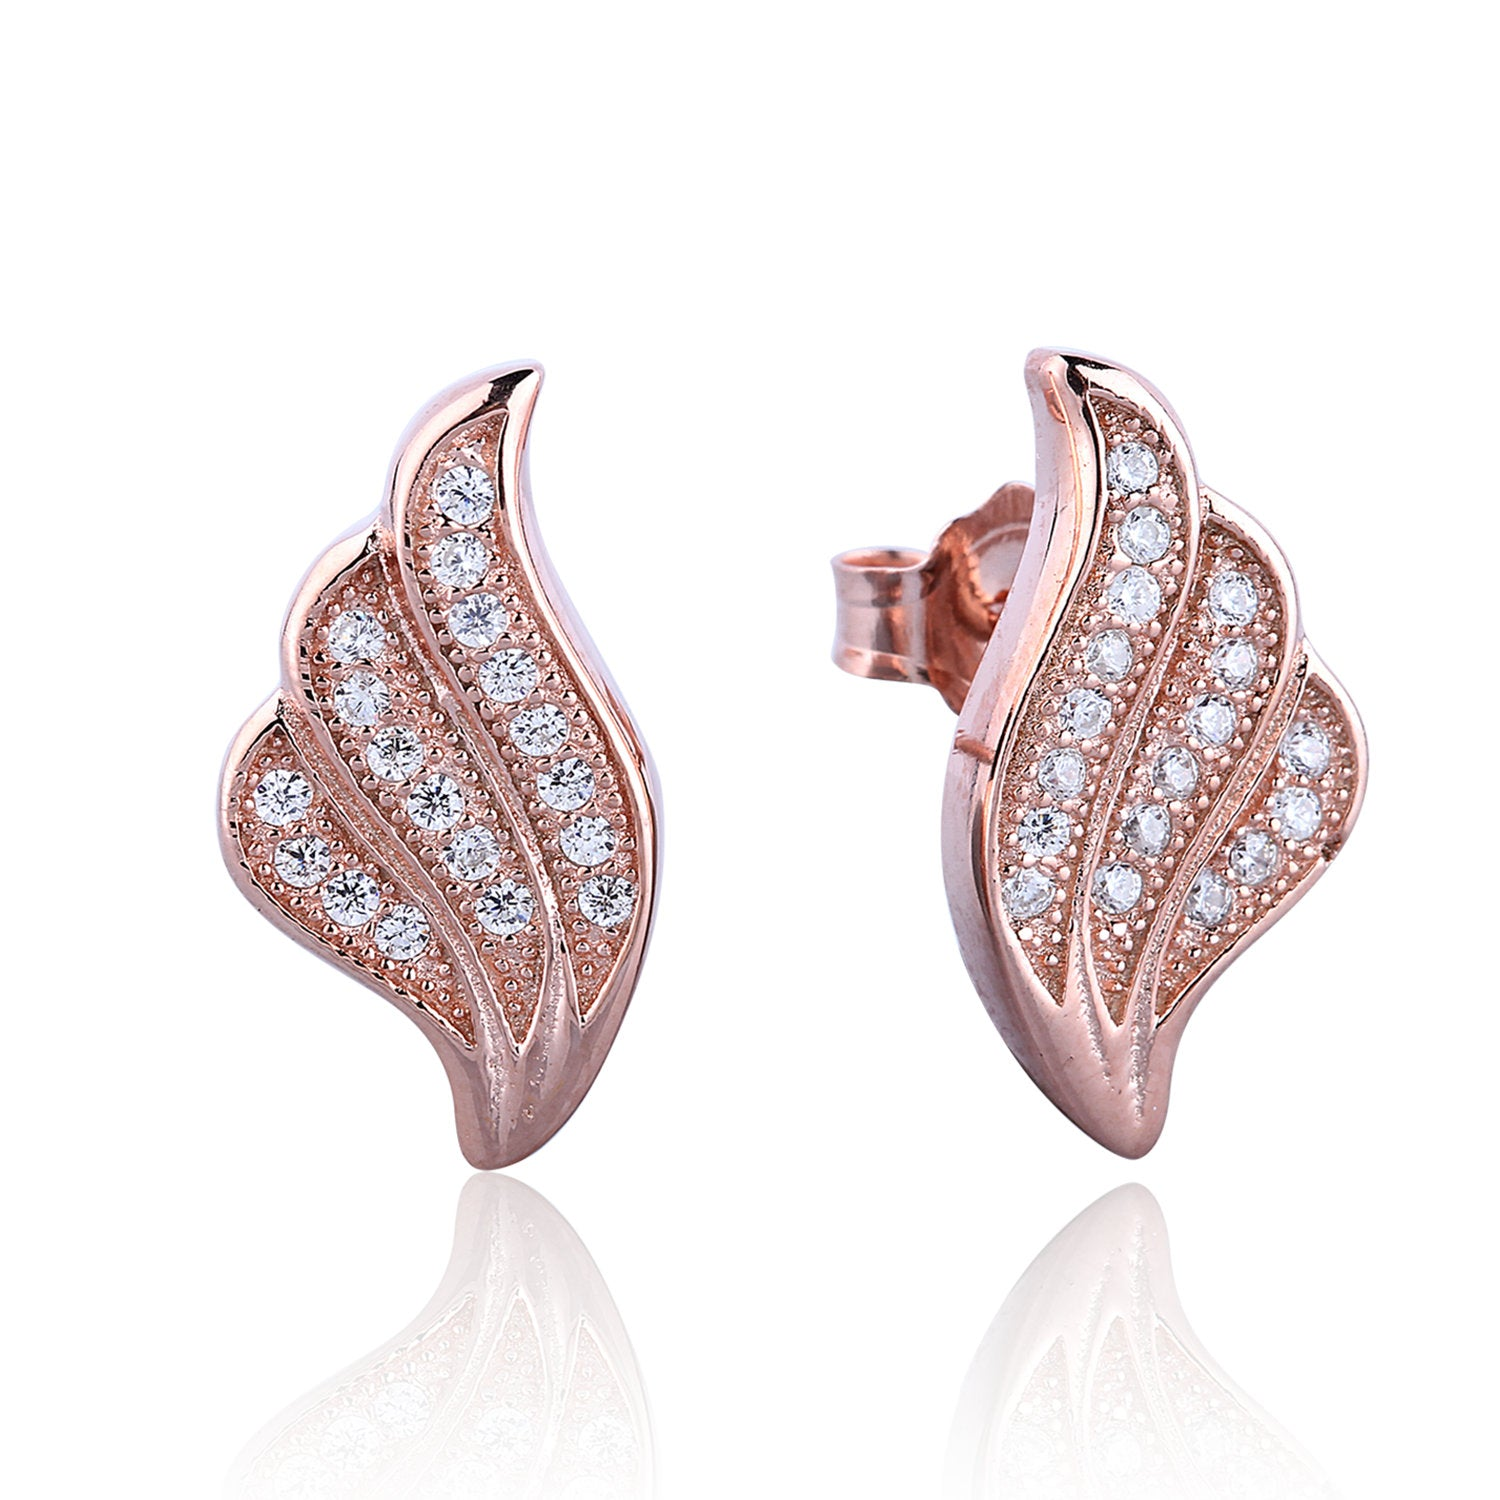 FEATHER PAVE CZ STERLING SILVER EARRINGS